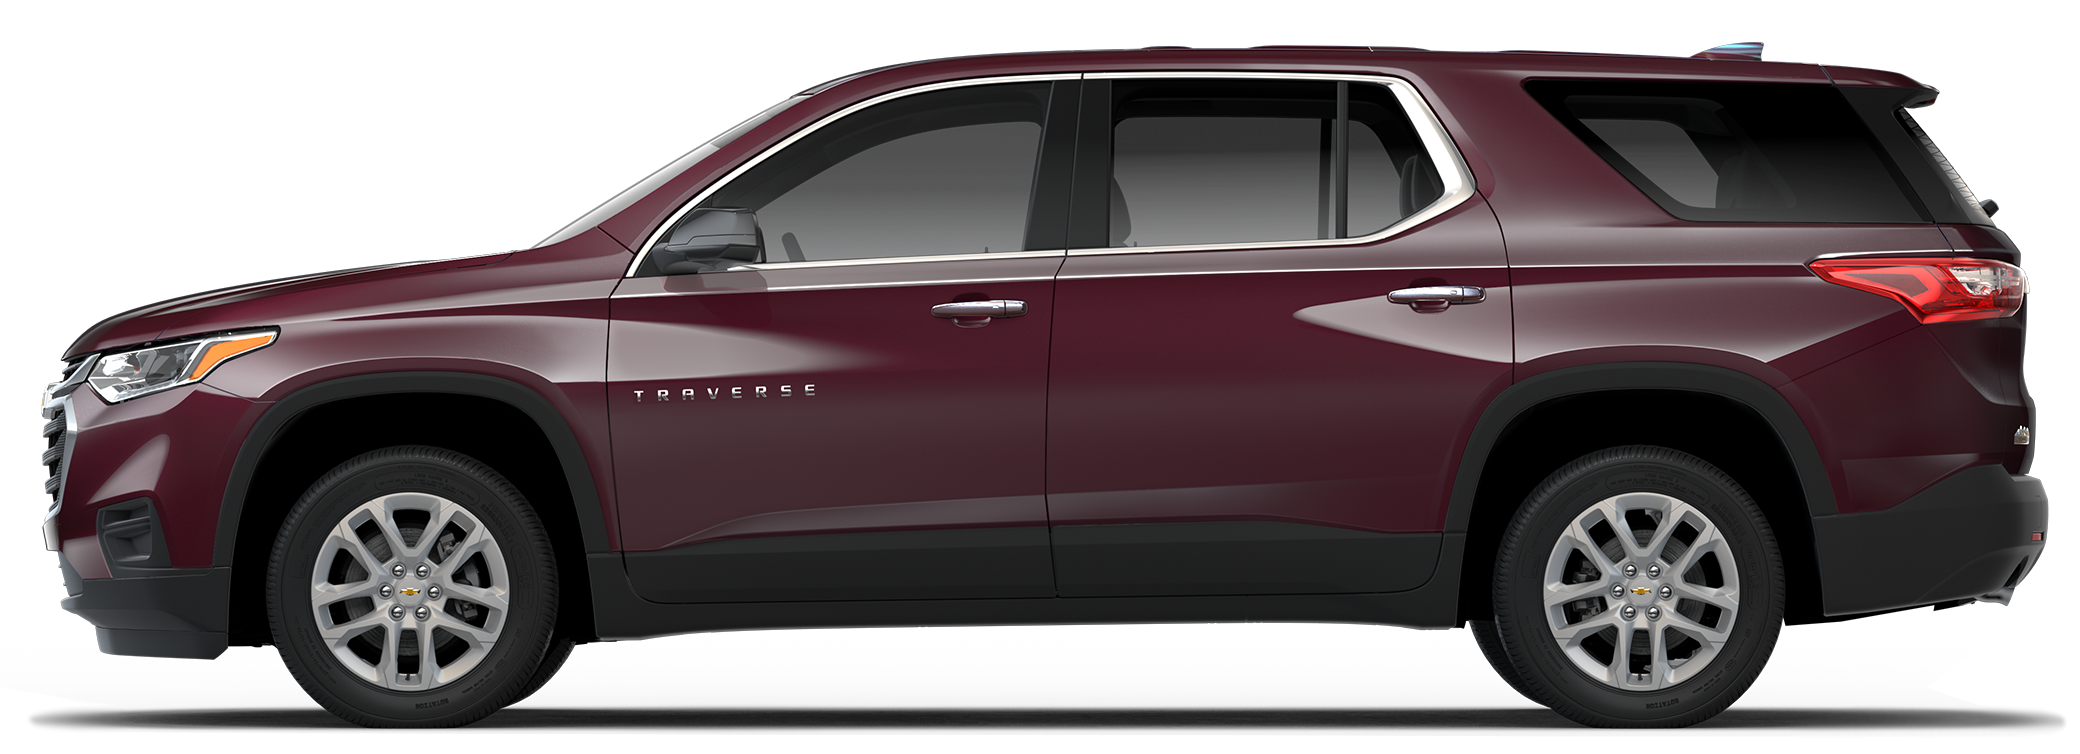 2019 Chevrolet Traverse SUV L